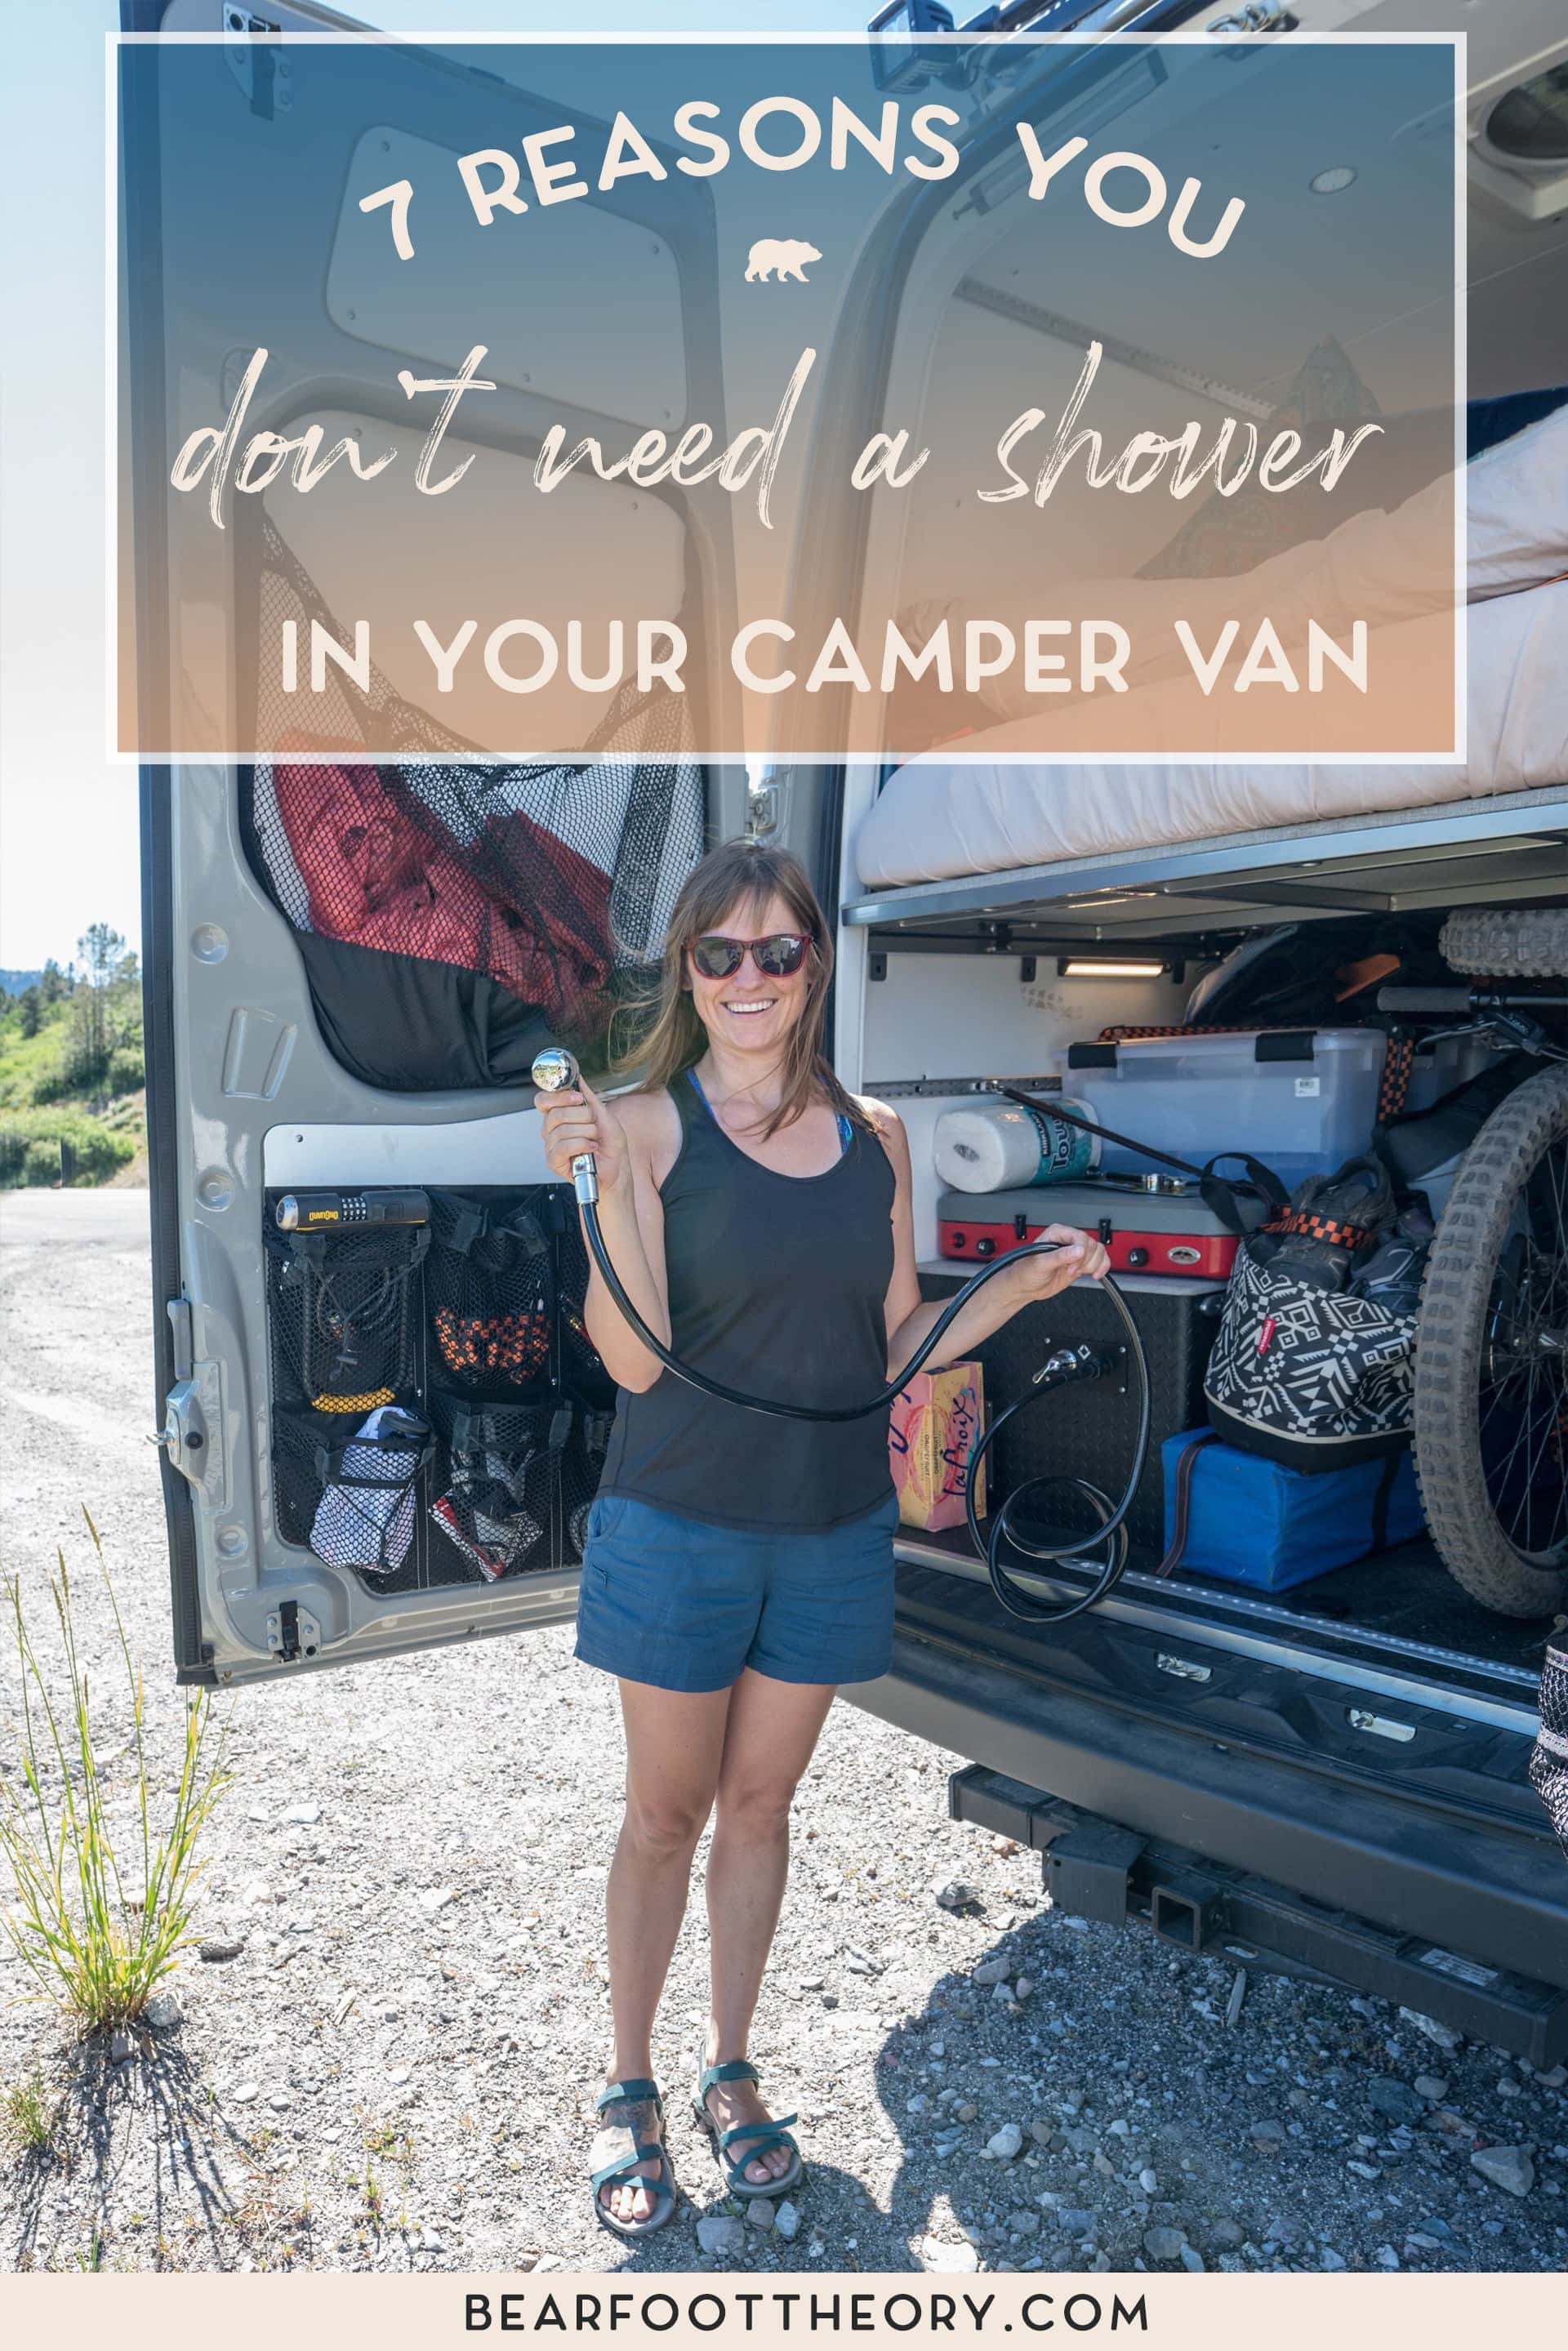 Having a shower in your camper van sounds nice, but it's expensive and unnecessary. Here are 7 reasons you don't need a shower in your converted van.